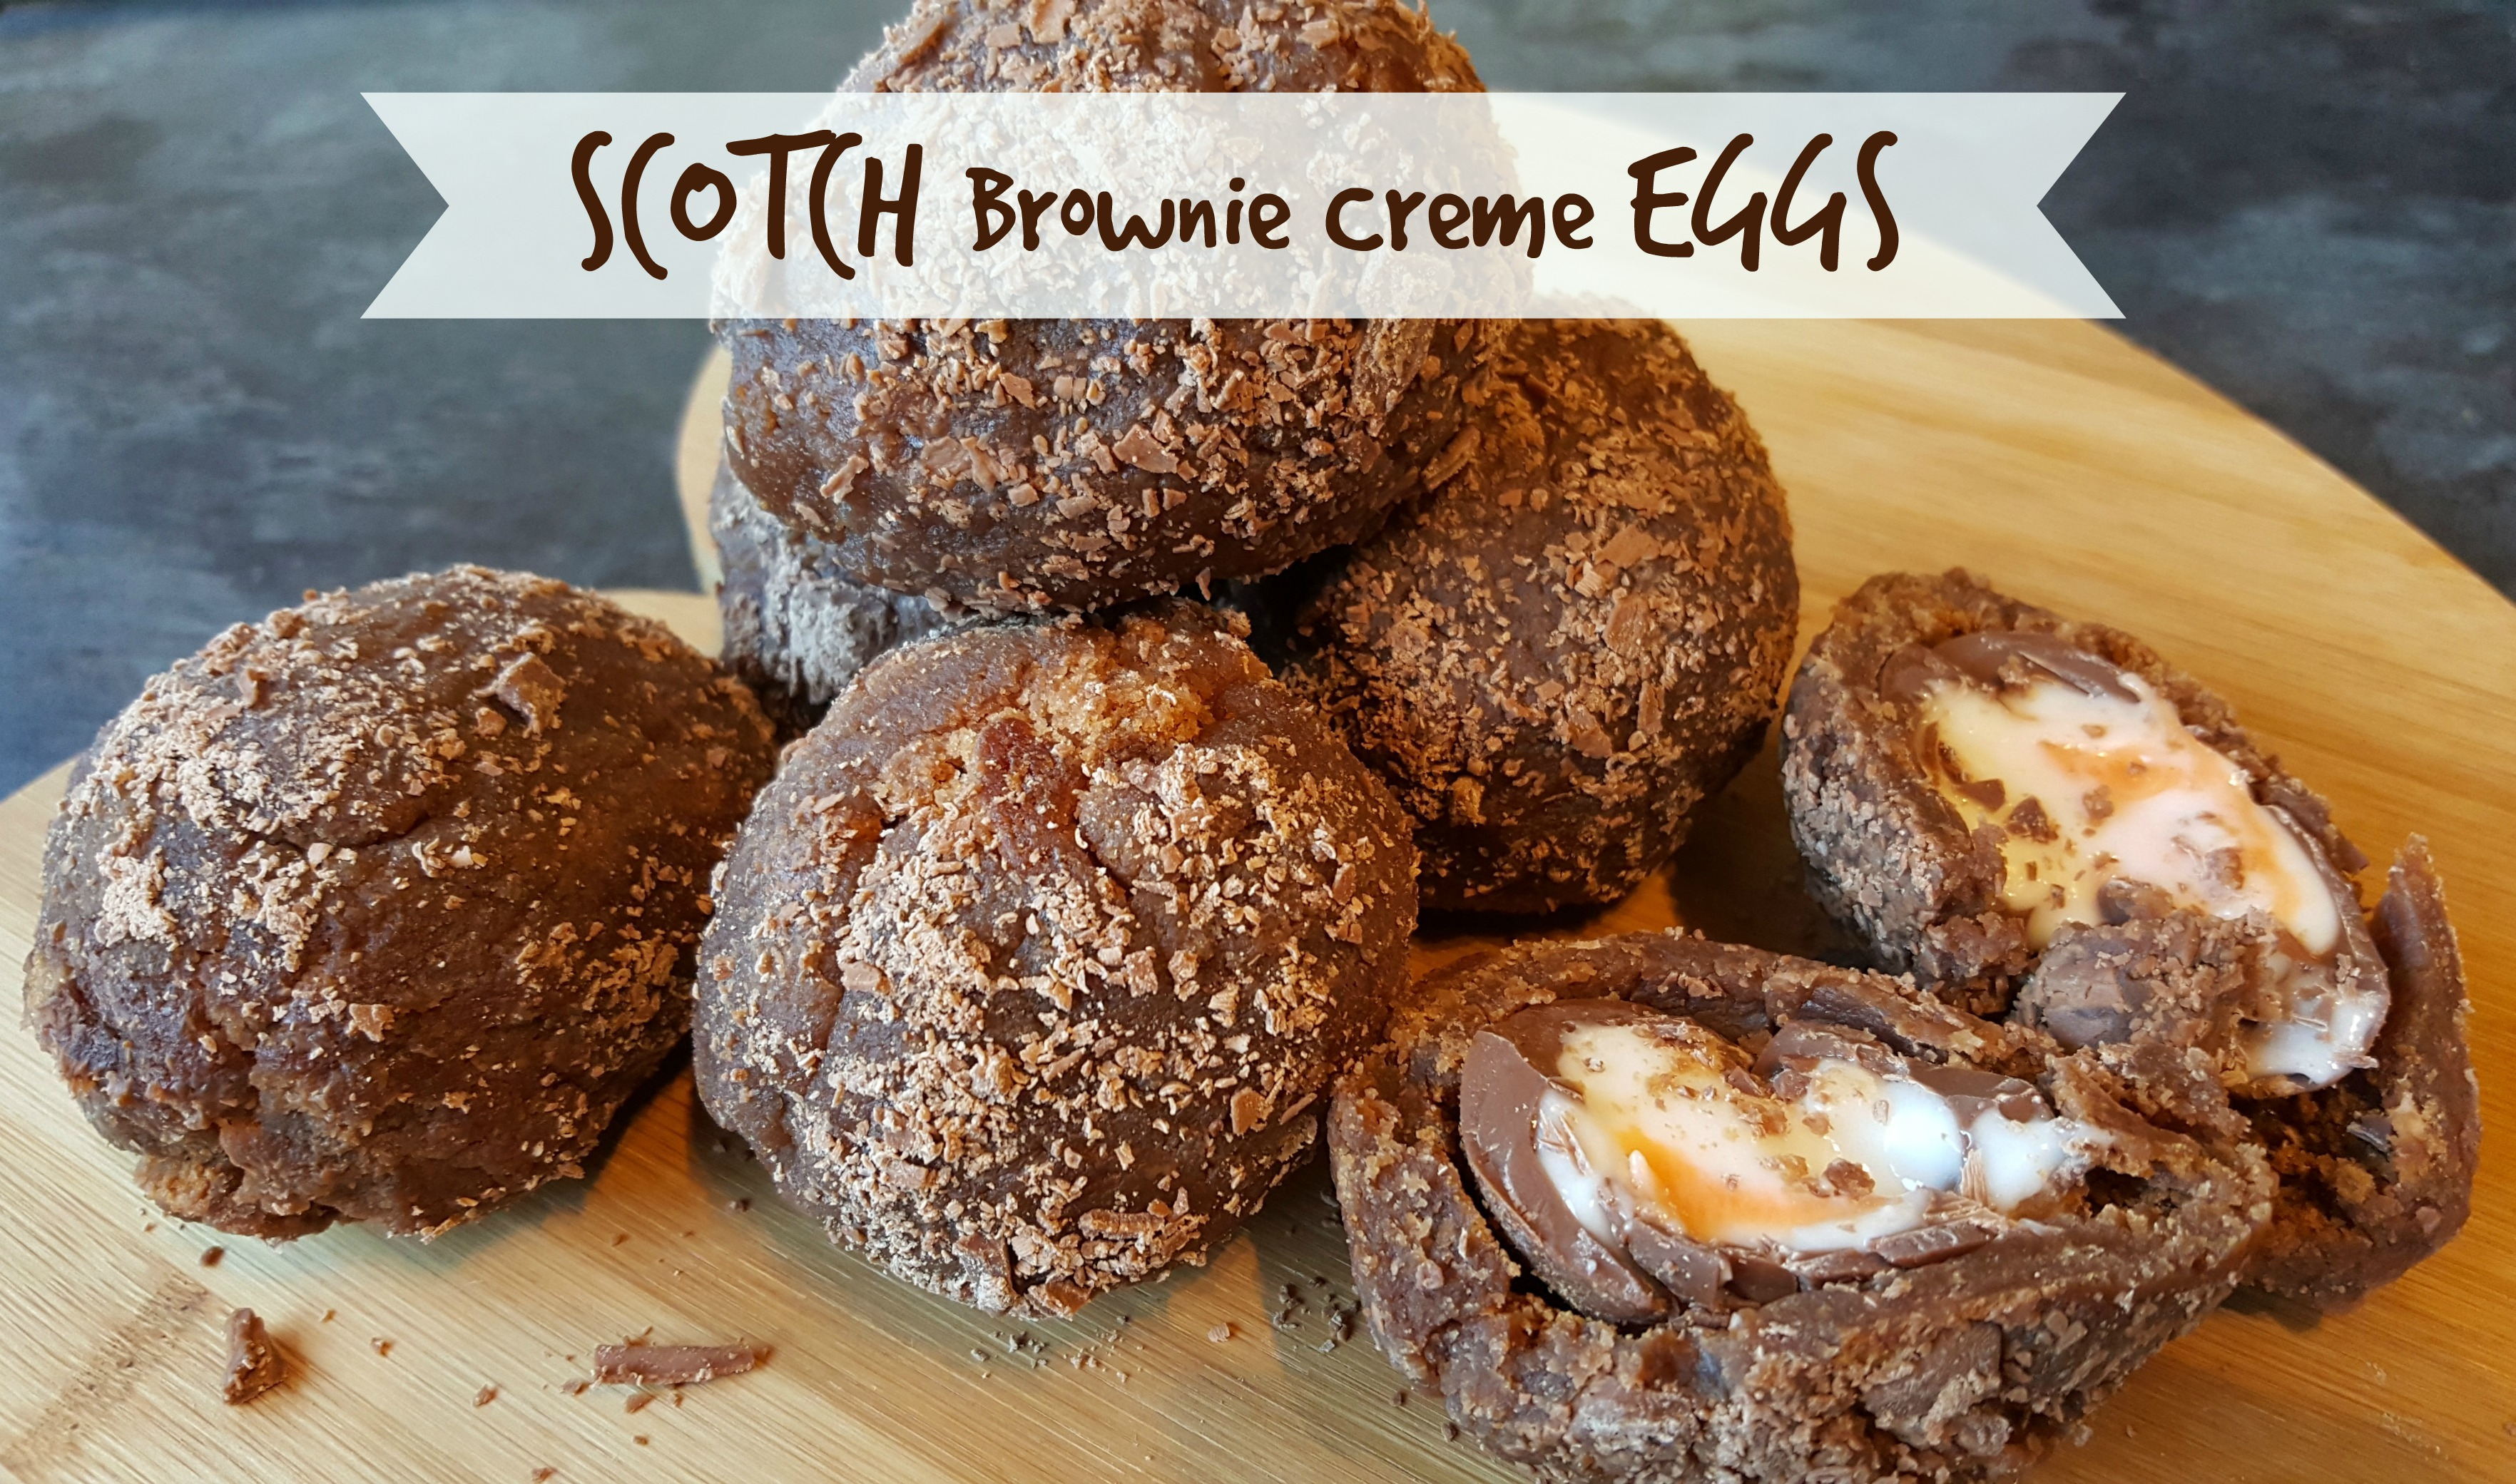 Scotch Brownie Creme Eggs